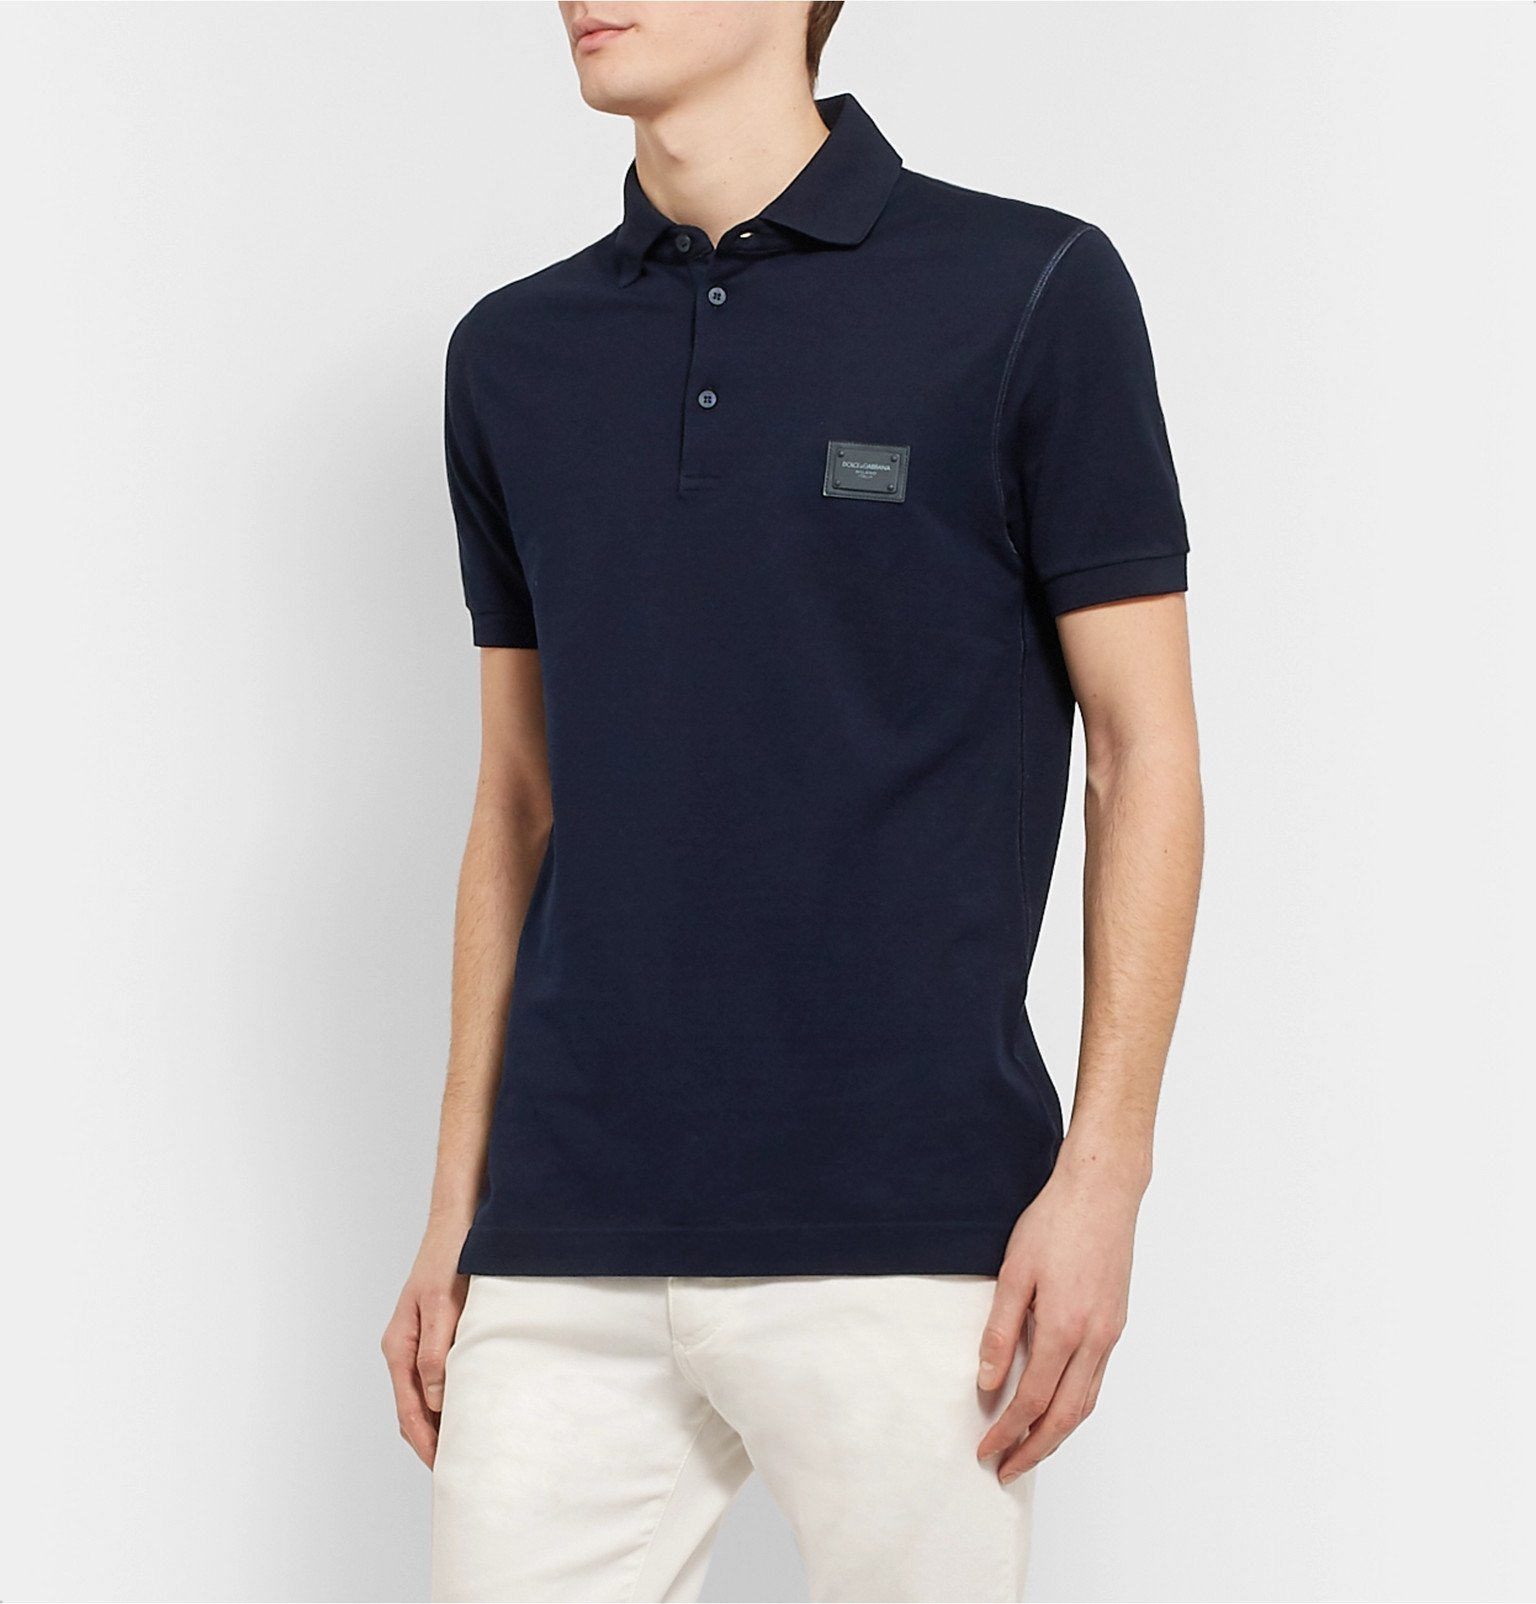 Dolce & Gabbana - Slim-Fit Logo-Appliquéd Cotton-Piqué Polo Shirt - Blue